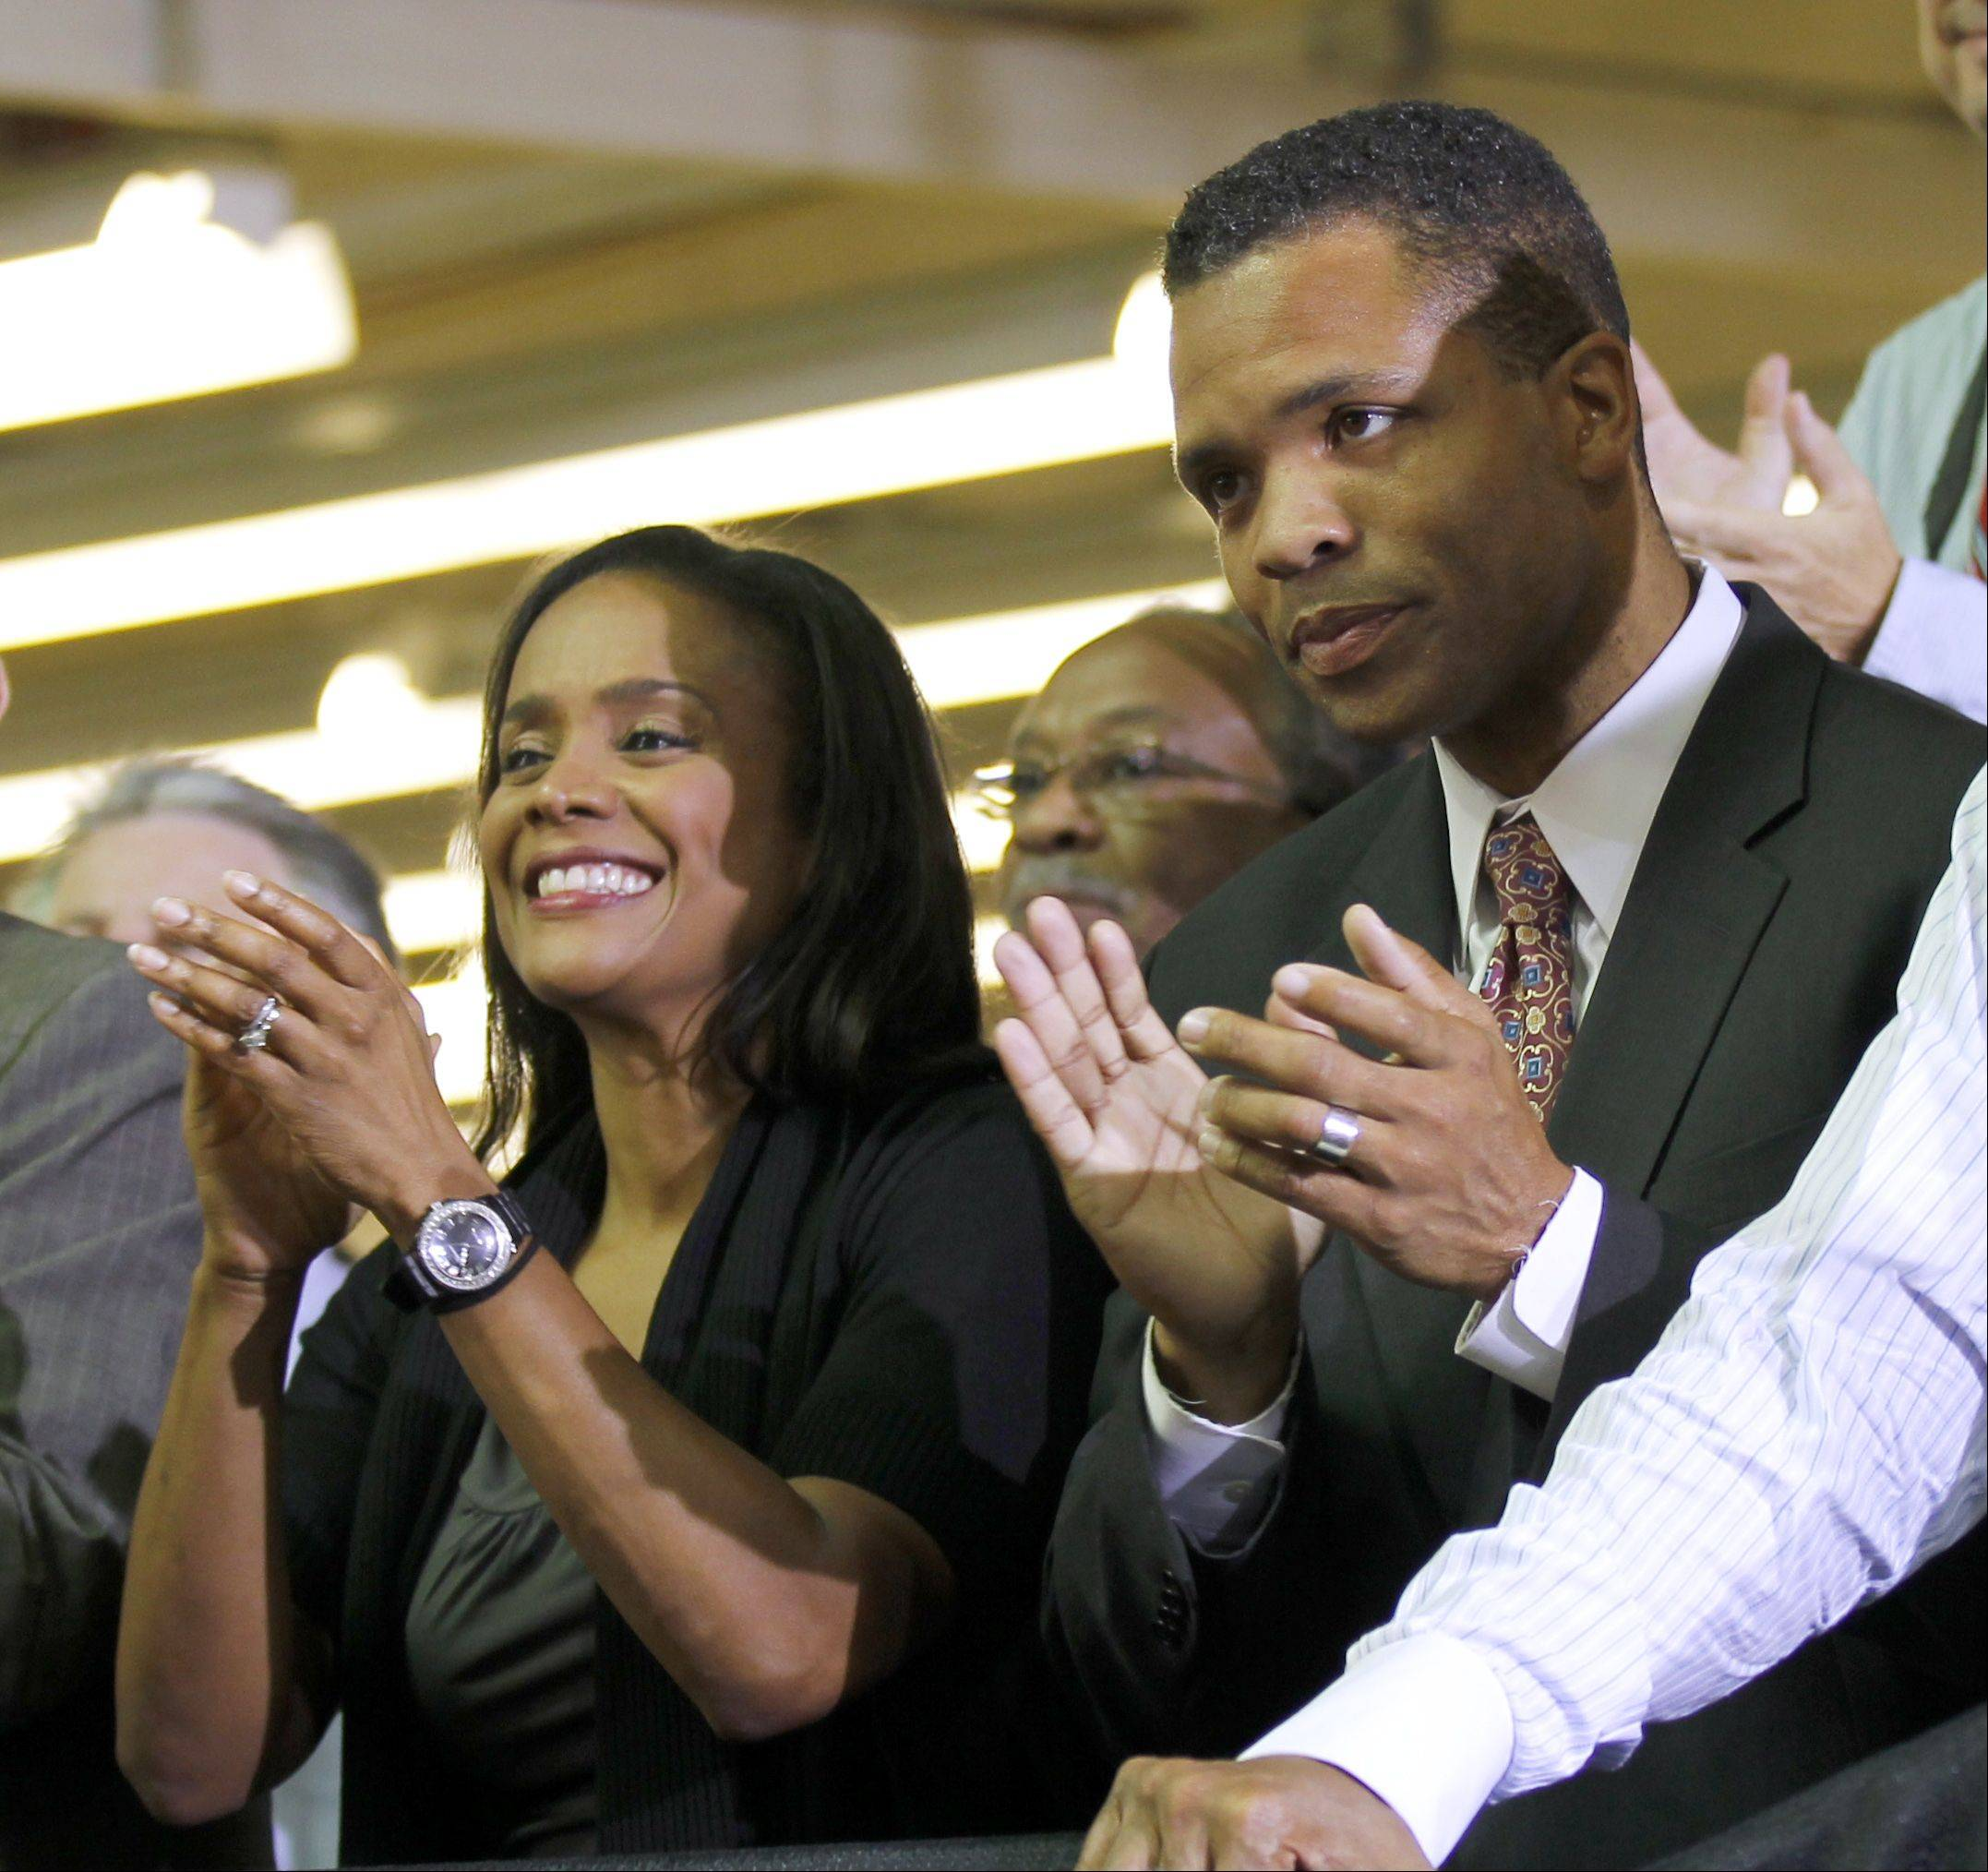 "Former Chicago Alderman Sandi Jackson and former Congressman Jesse Jackson Jr. applaud as President Barack Obama is introduced at a city Ford plant in 2010. Sandi Jackson resigned office last month, saying she couldn't adequately represent her ward while dealing with ""very painful health matters."" The former congressman resigned in November and has been under federal investigation."